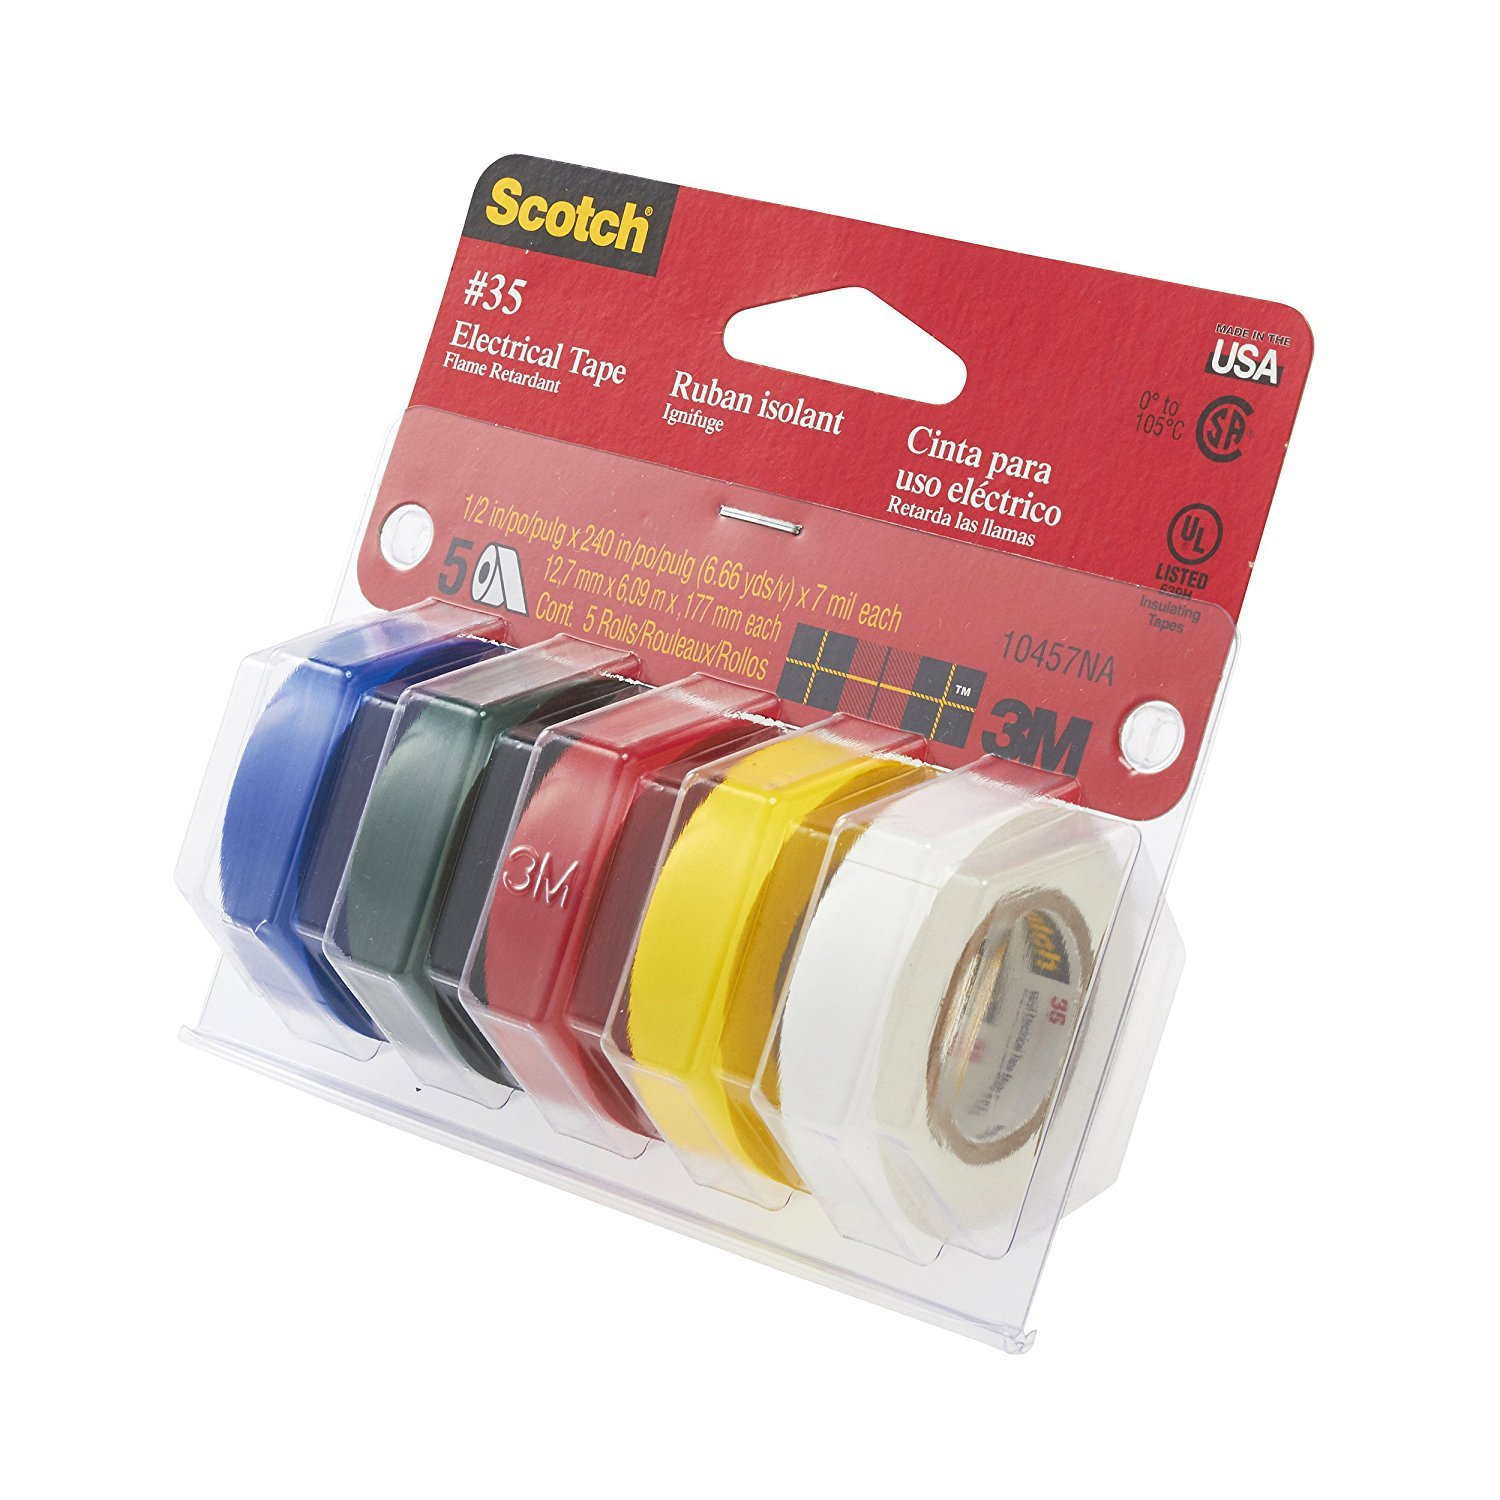 3M Scotch #35 Electrical Tape Value Pack VFP4B , 2-PACK